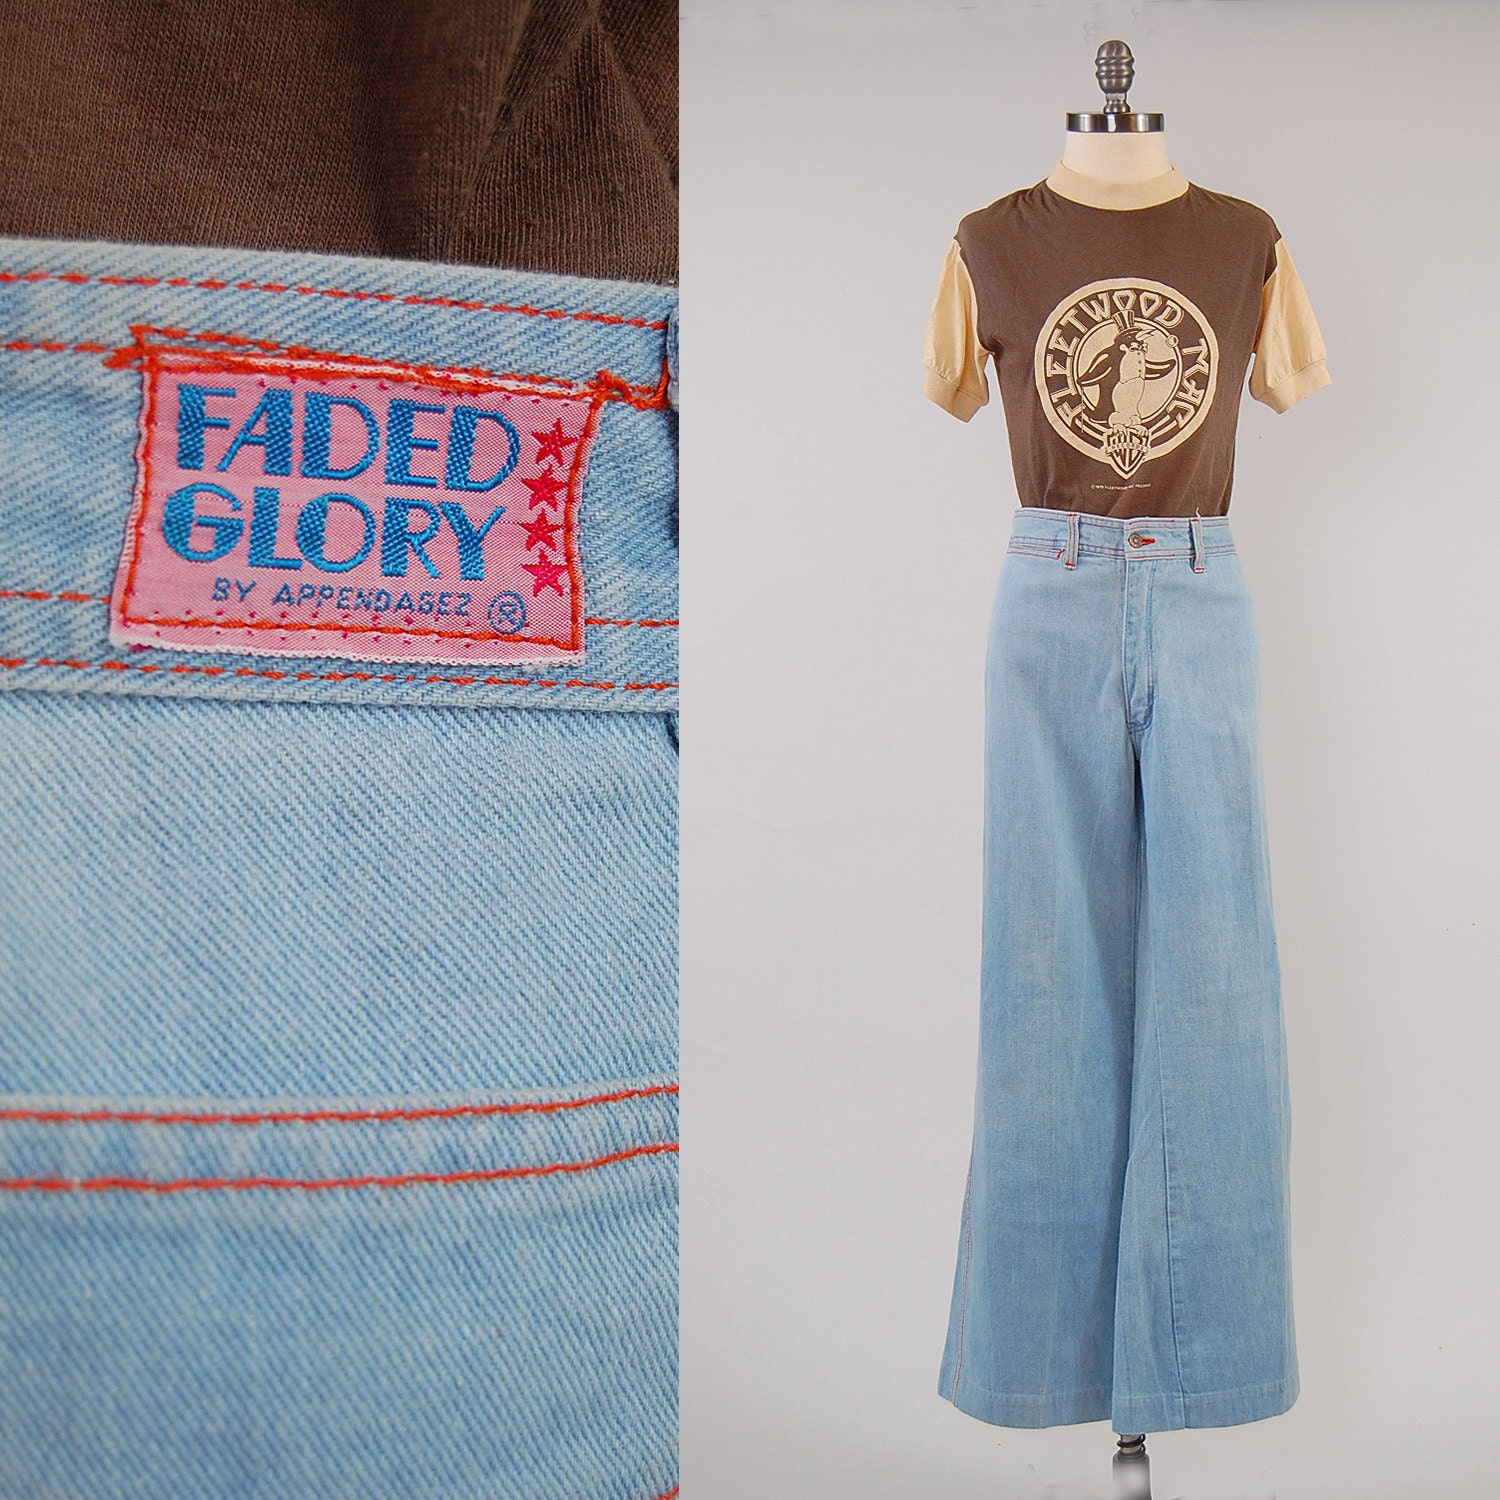 Vintage 70s Faded Glory Bellbottom Jeans 32 Inch Waist By 31